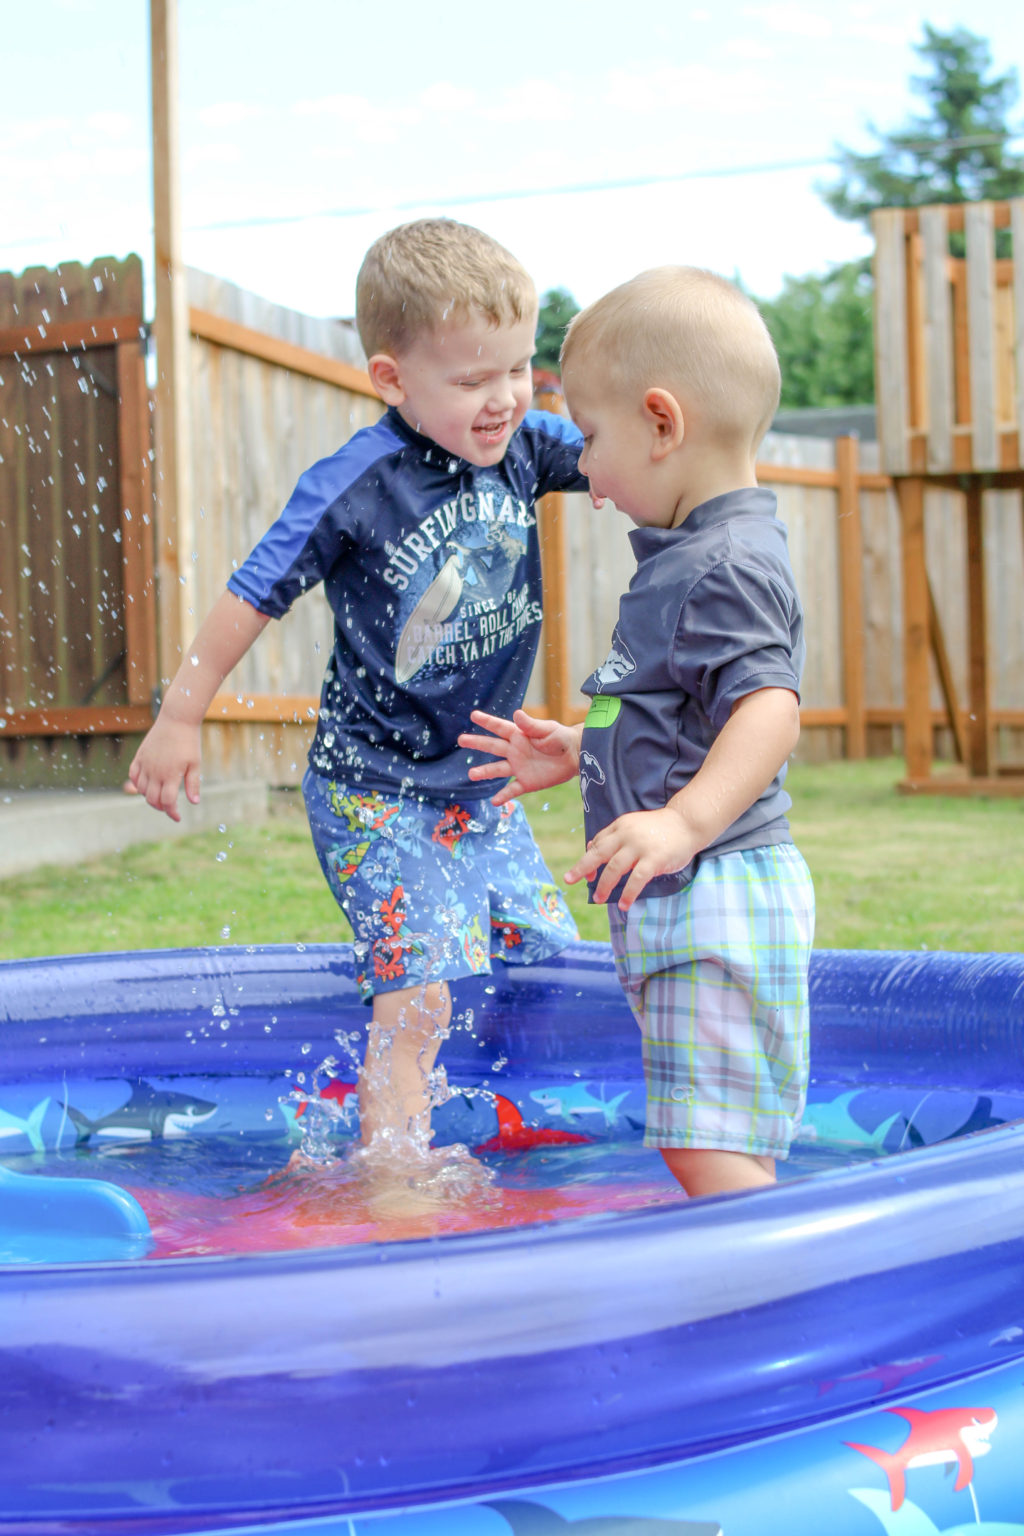 Preschooler boy splashing into a wading pool with toddler boy looking surprised